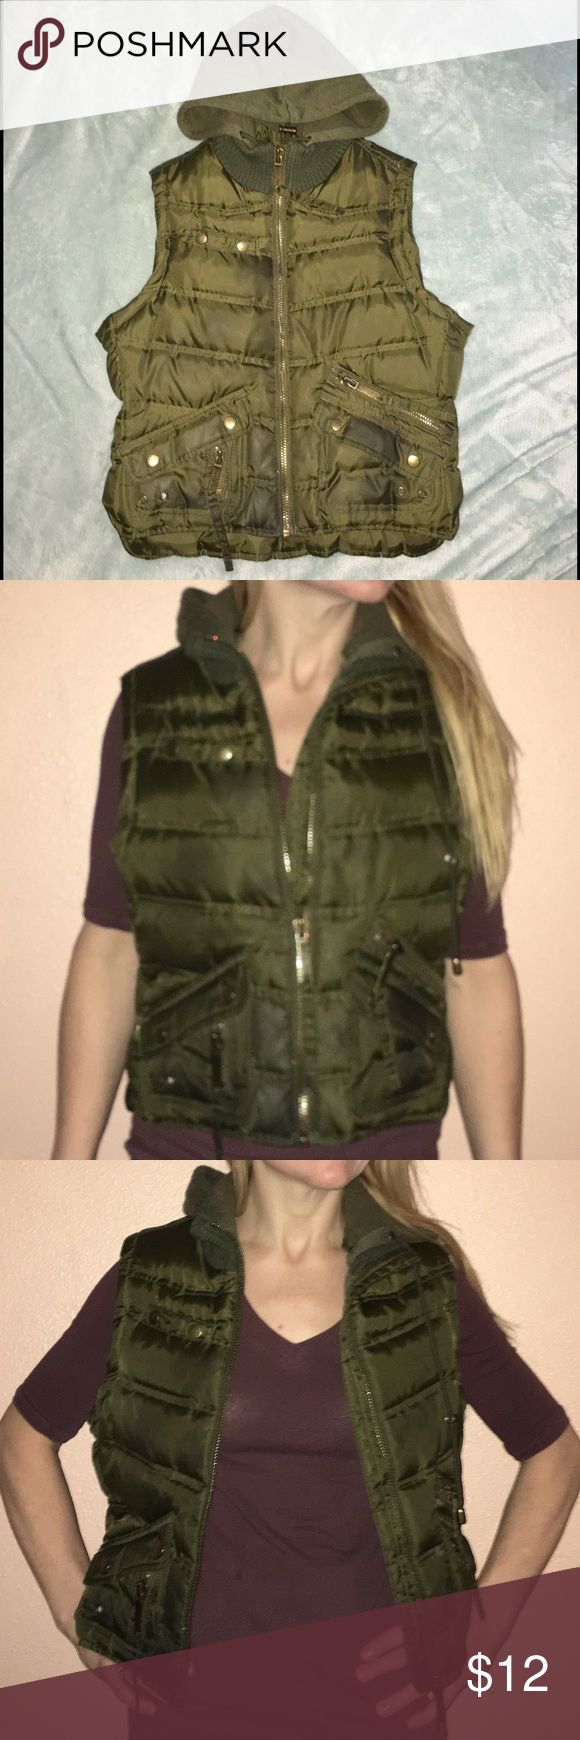 Down Feather Olive Green Hooded Vest No Boundaries, Down Feather Olive Green Hooded Vest in Great Condition! Ladies Size M. The Shell is 100% Polyester. The Lining is 95% Polyester & 35% Cotton. The Hood is 58% Cotton & 42% Polyester. The Filler is 60% Down & 40% Feathers. No Boundaries Jackets & Coats Vests